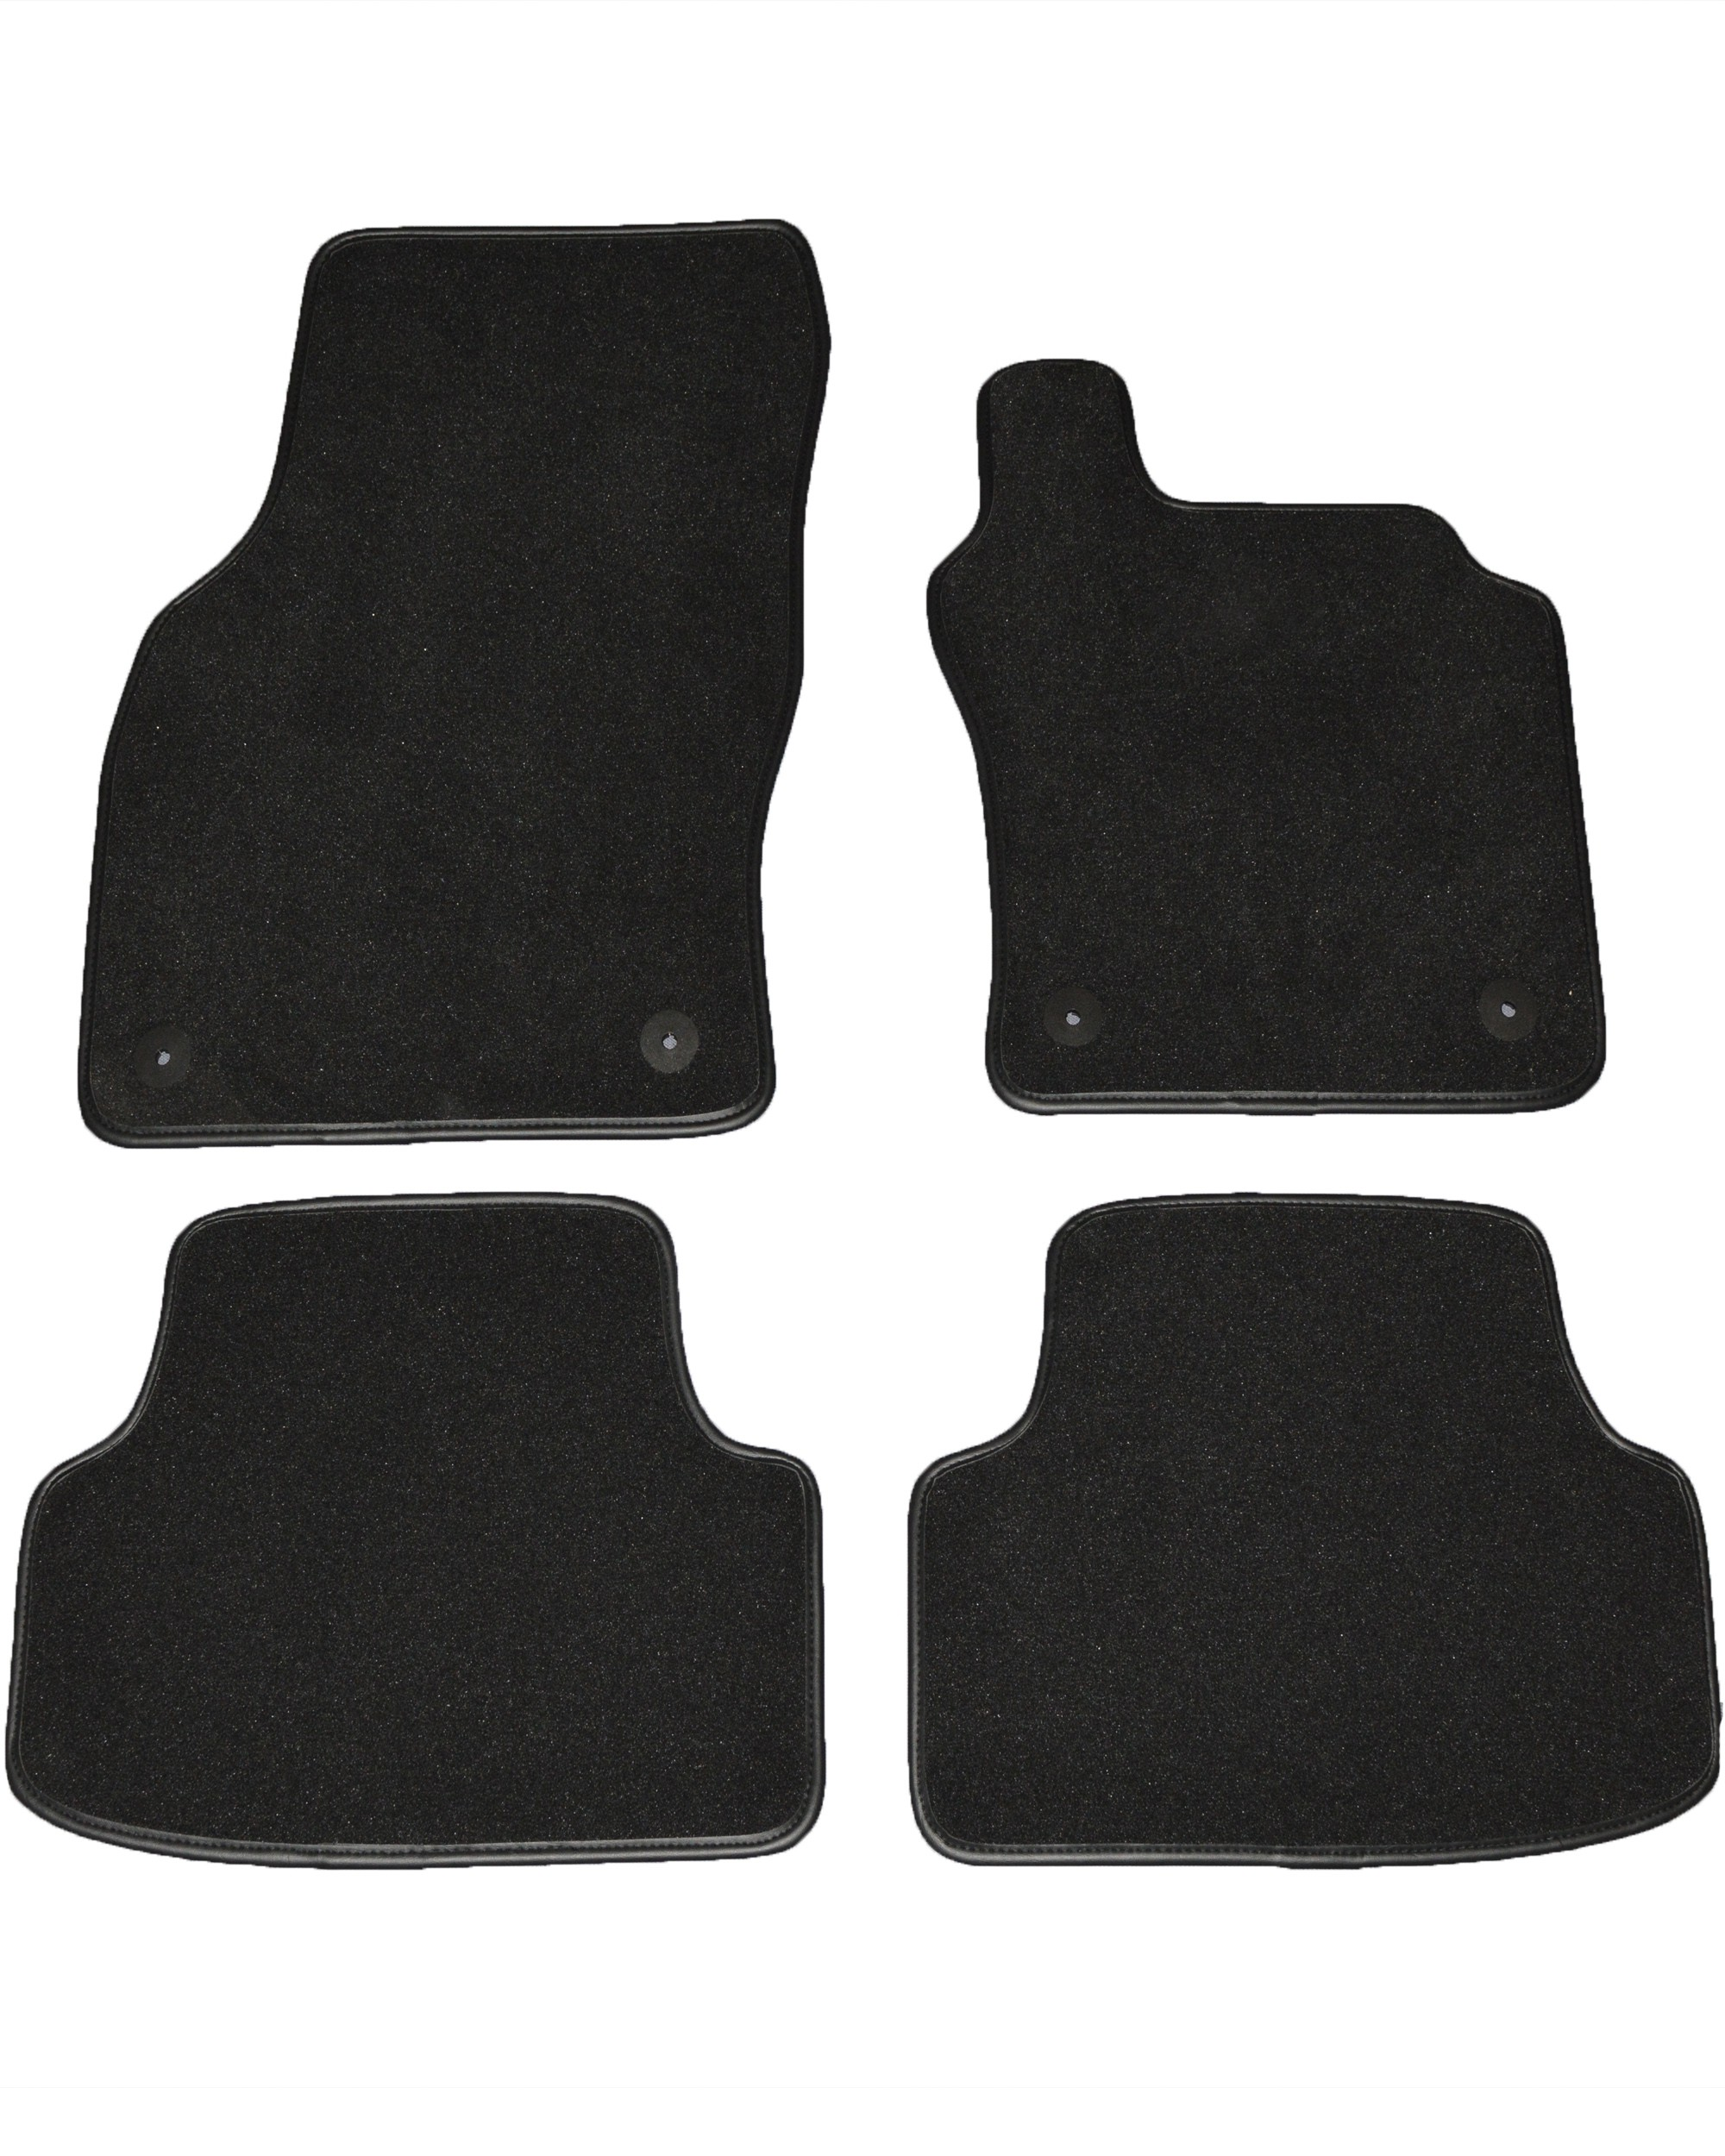 VW Golf MK7 car mats